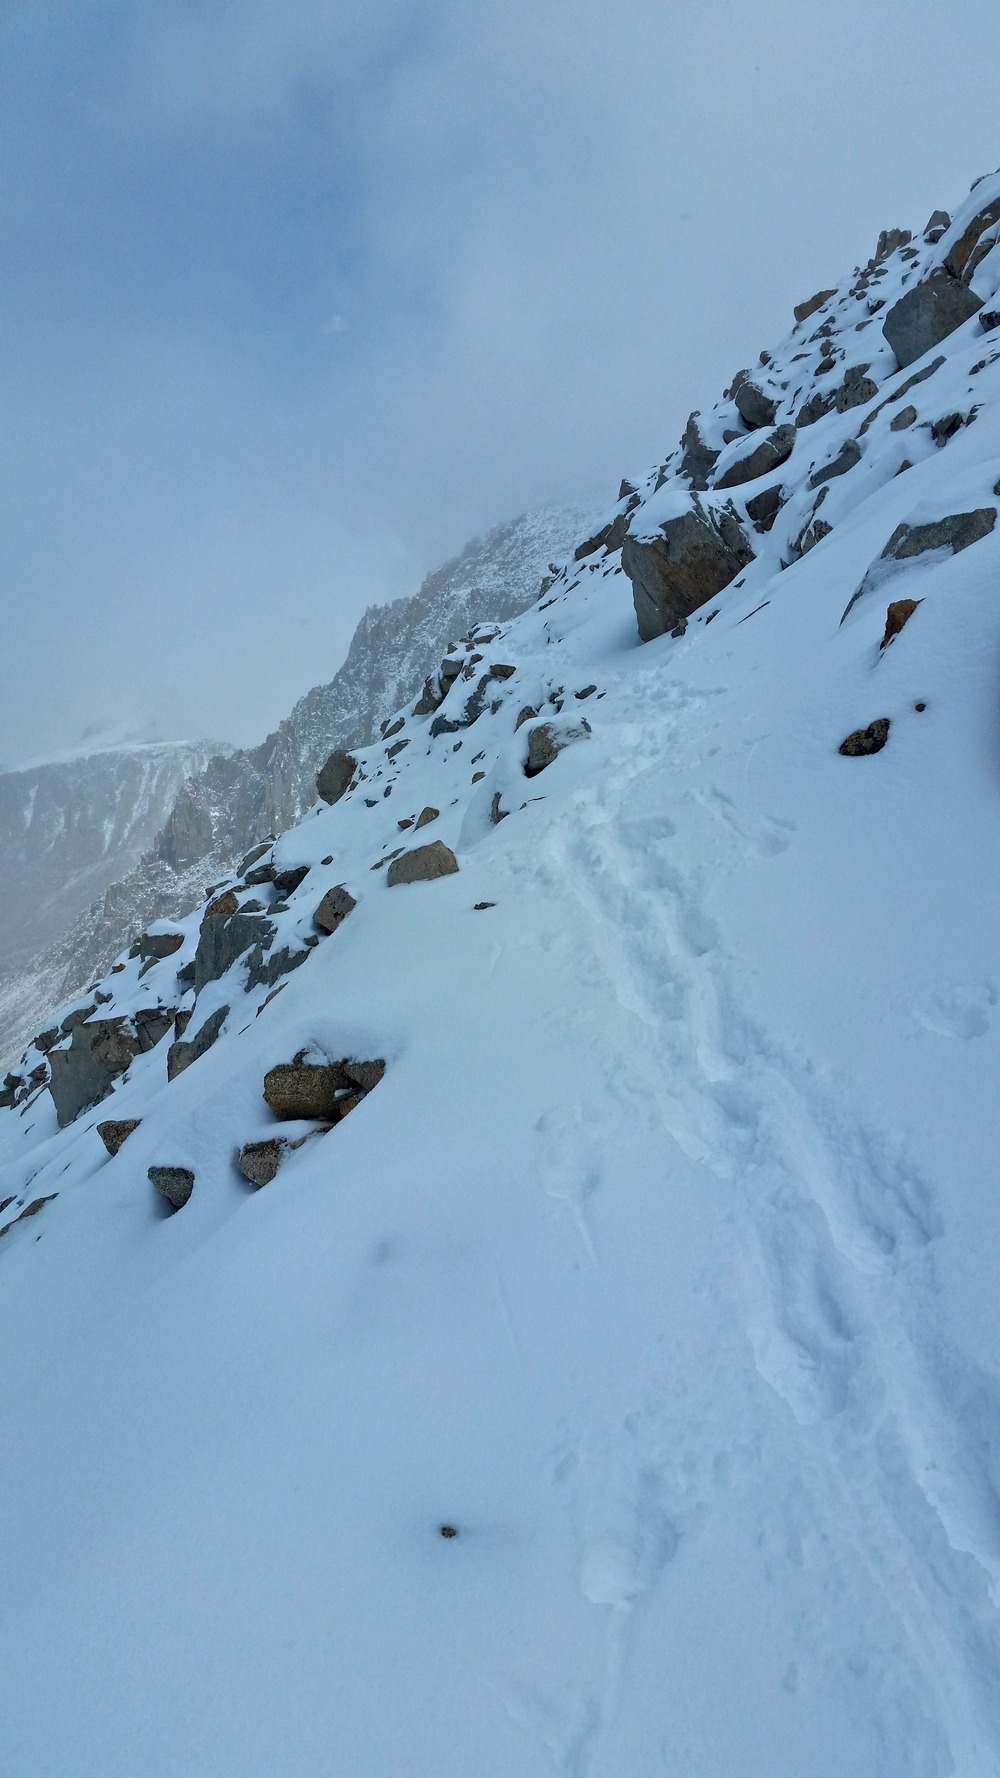 Making tracks on Mt. Whitney. Thank you Apple Pie and Lizard!